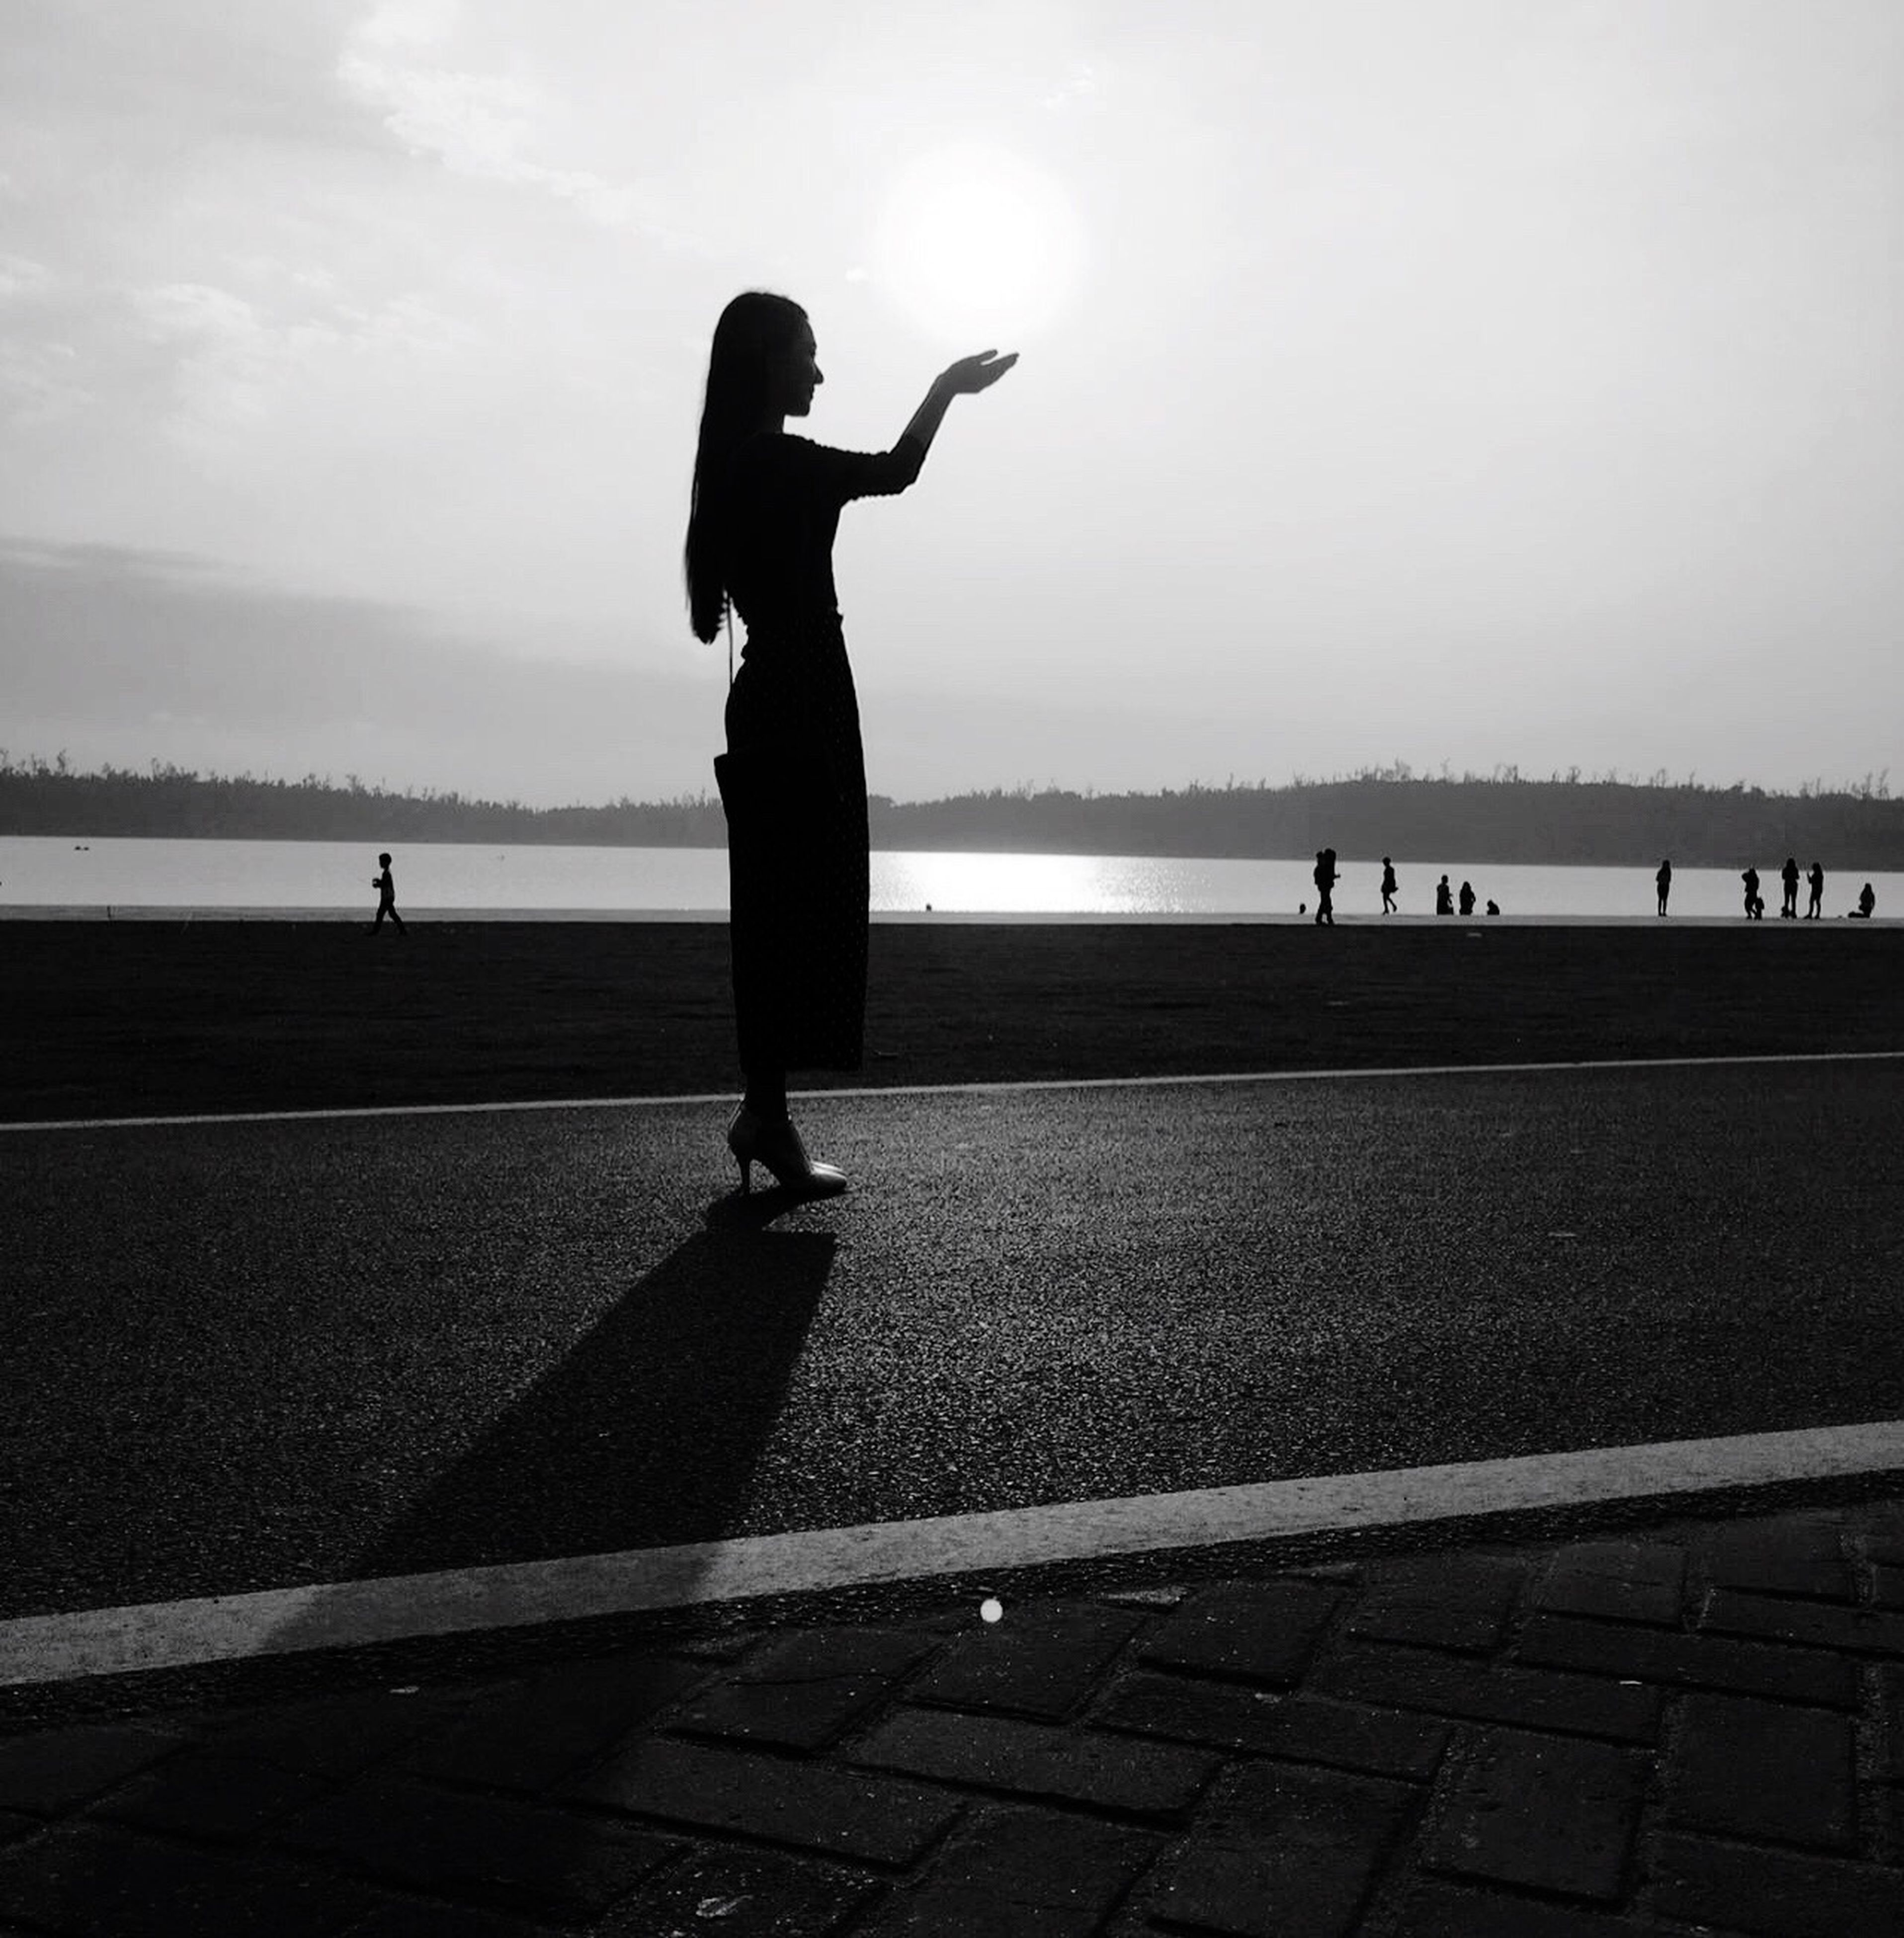 full length, lifestyles, leisure activity, sky, silhouette, men, sea, street, walking, side view, road, rear view, beach, person, outdoors, standing, sunlight, day